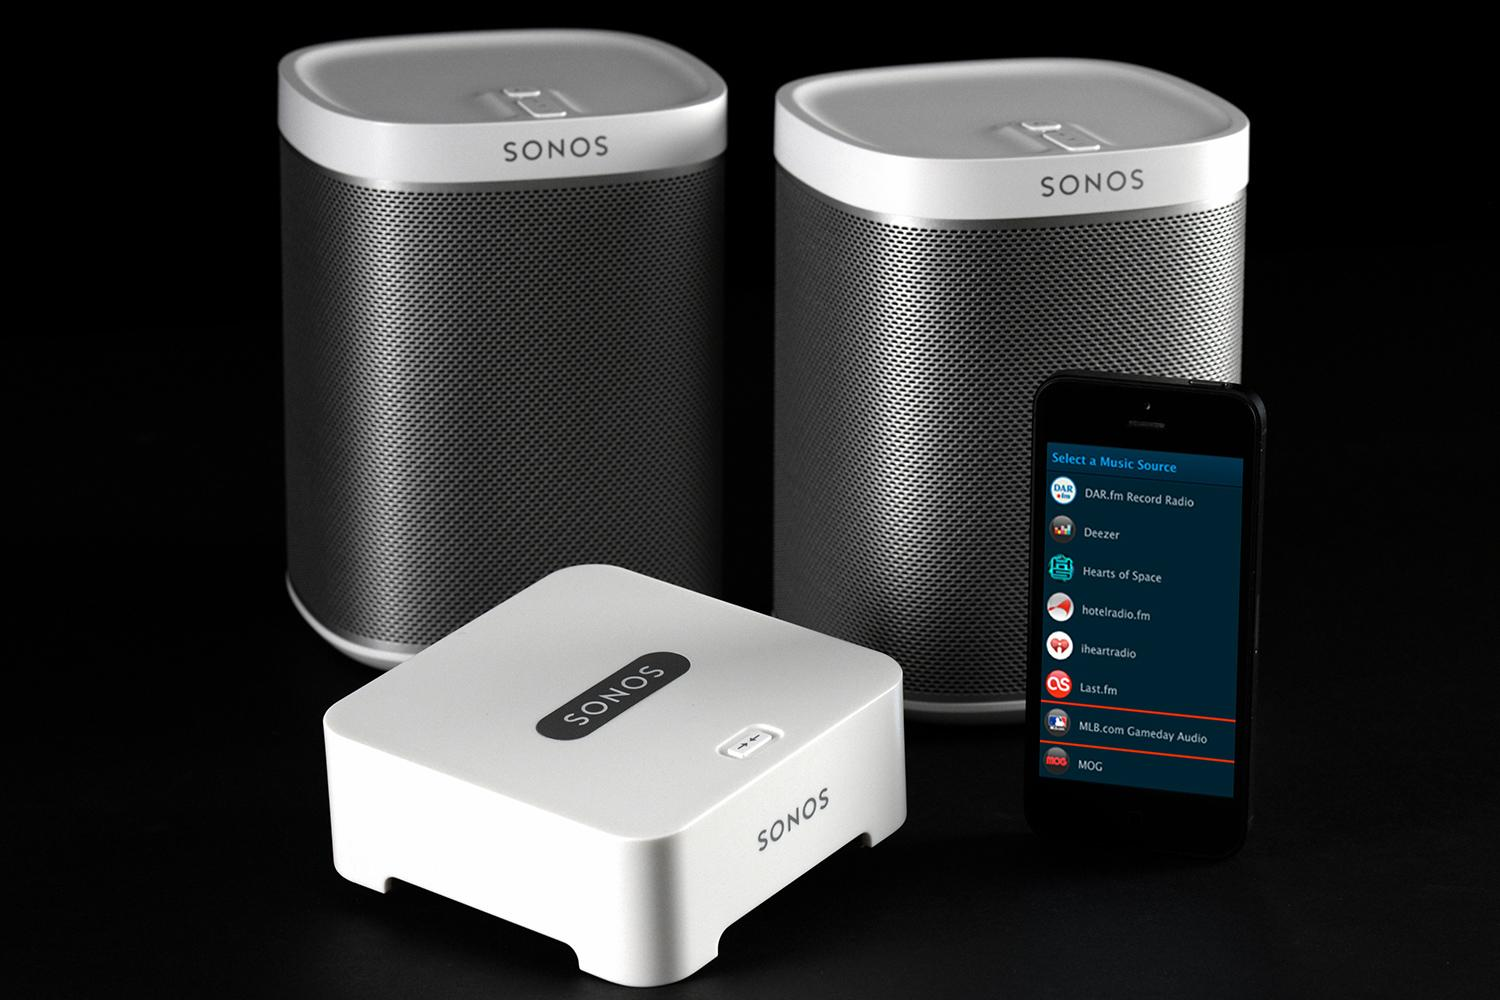 Sonos Control With The Amazon Echo How I Did It Whole Home Audio System Thoughts Opinions And A Little Ranting